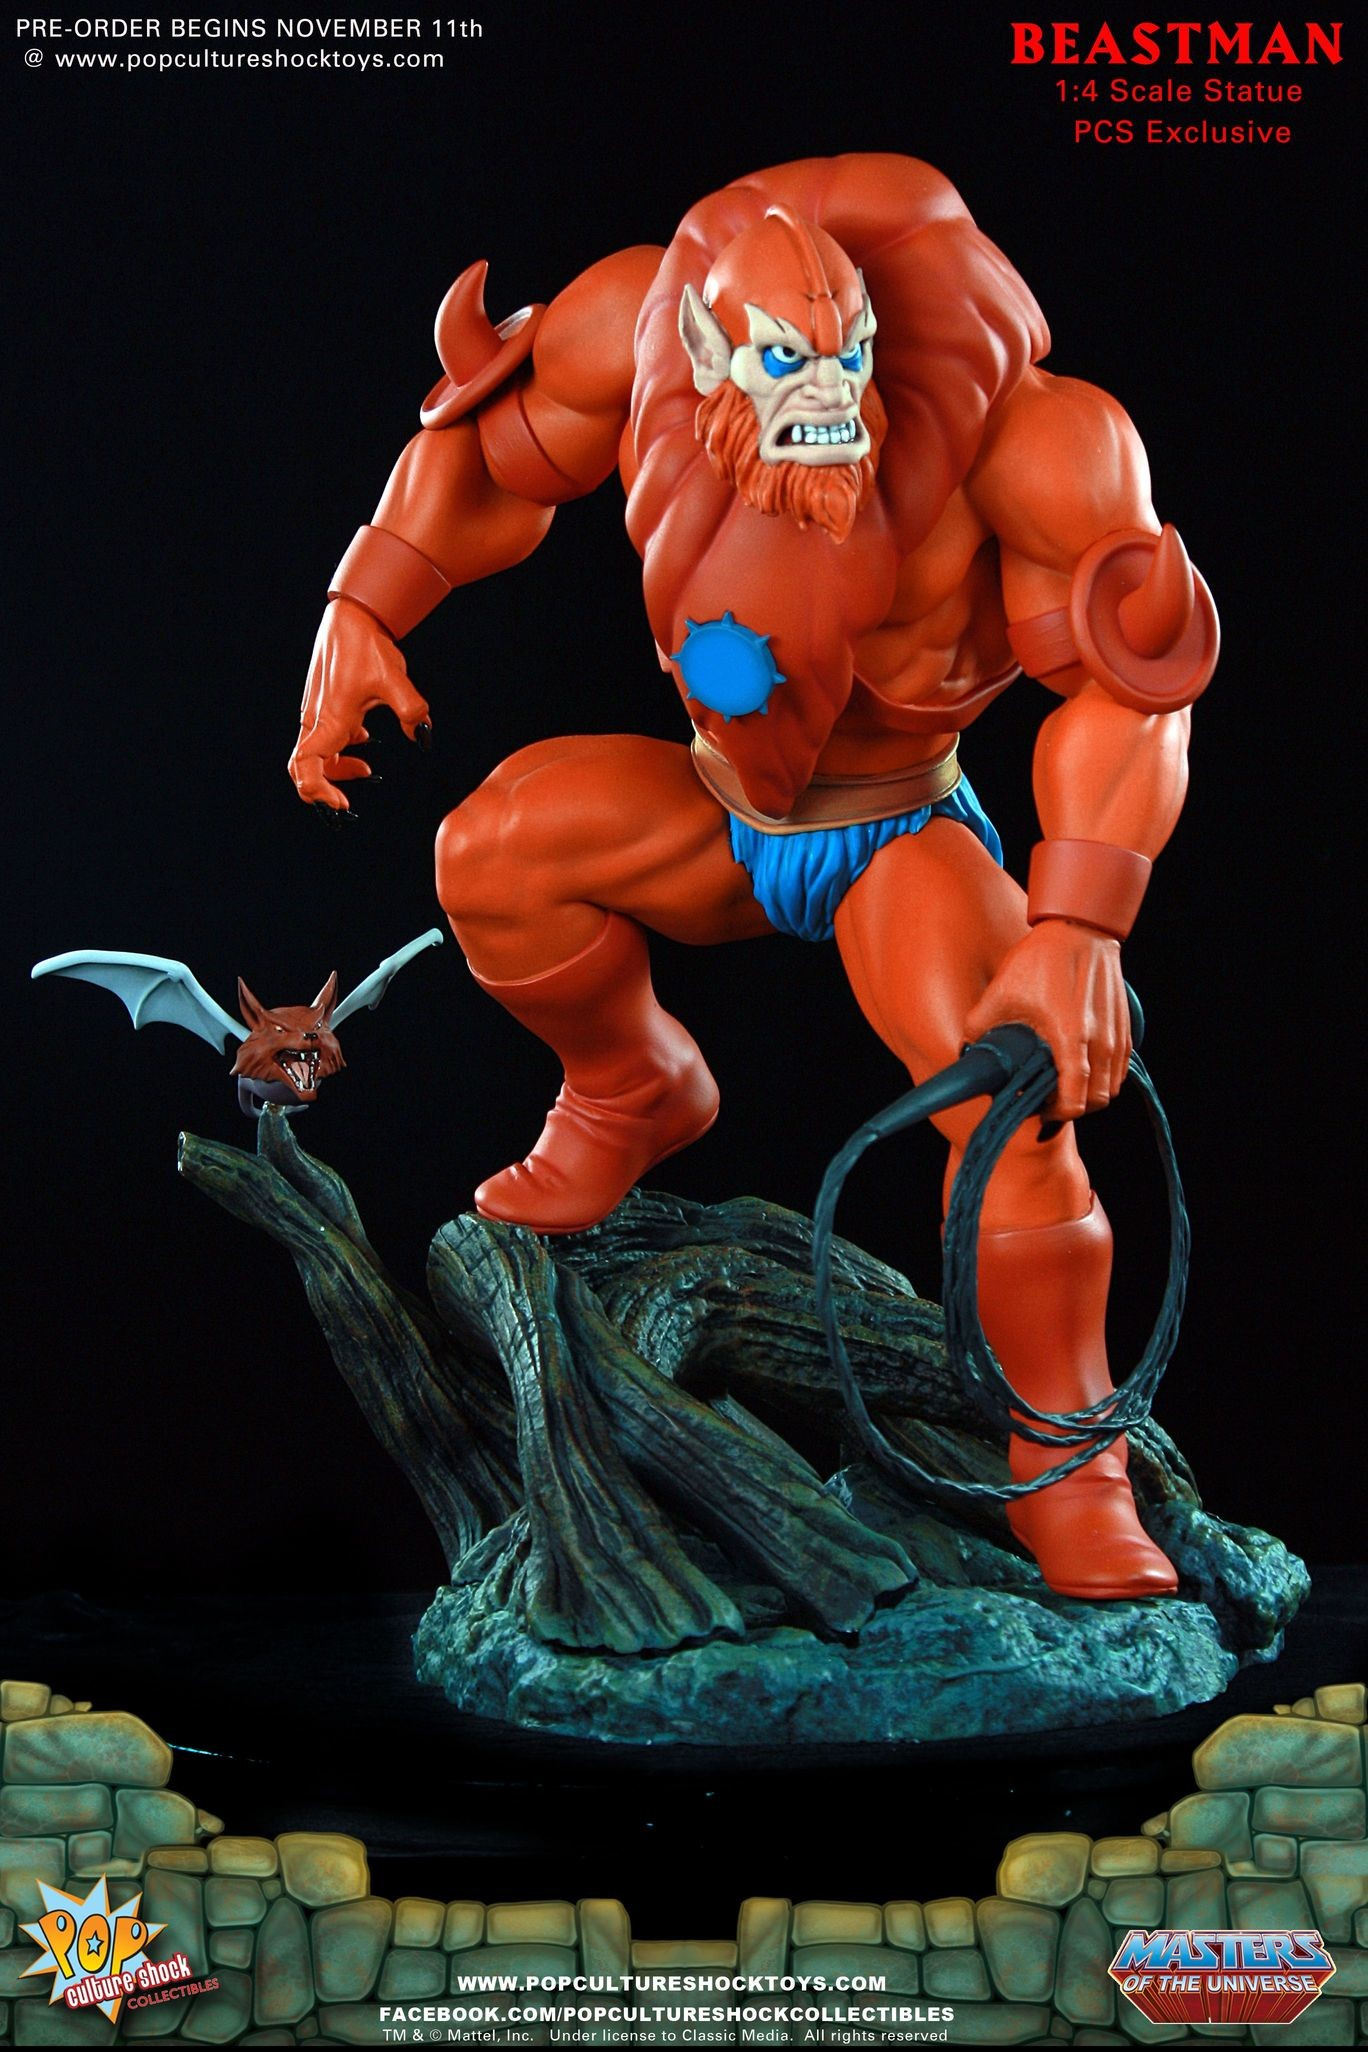 Alejandro pereira beastman exclusive edition motu pop culture shock 02